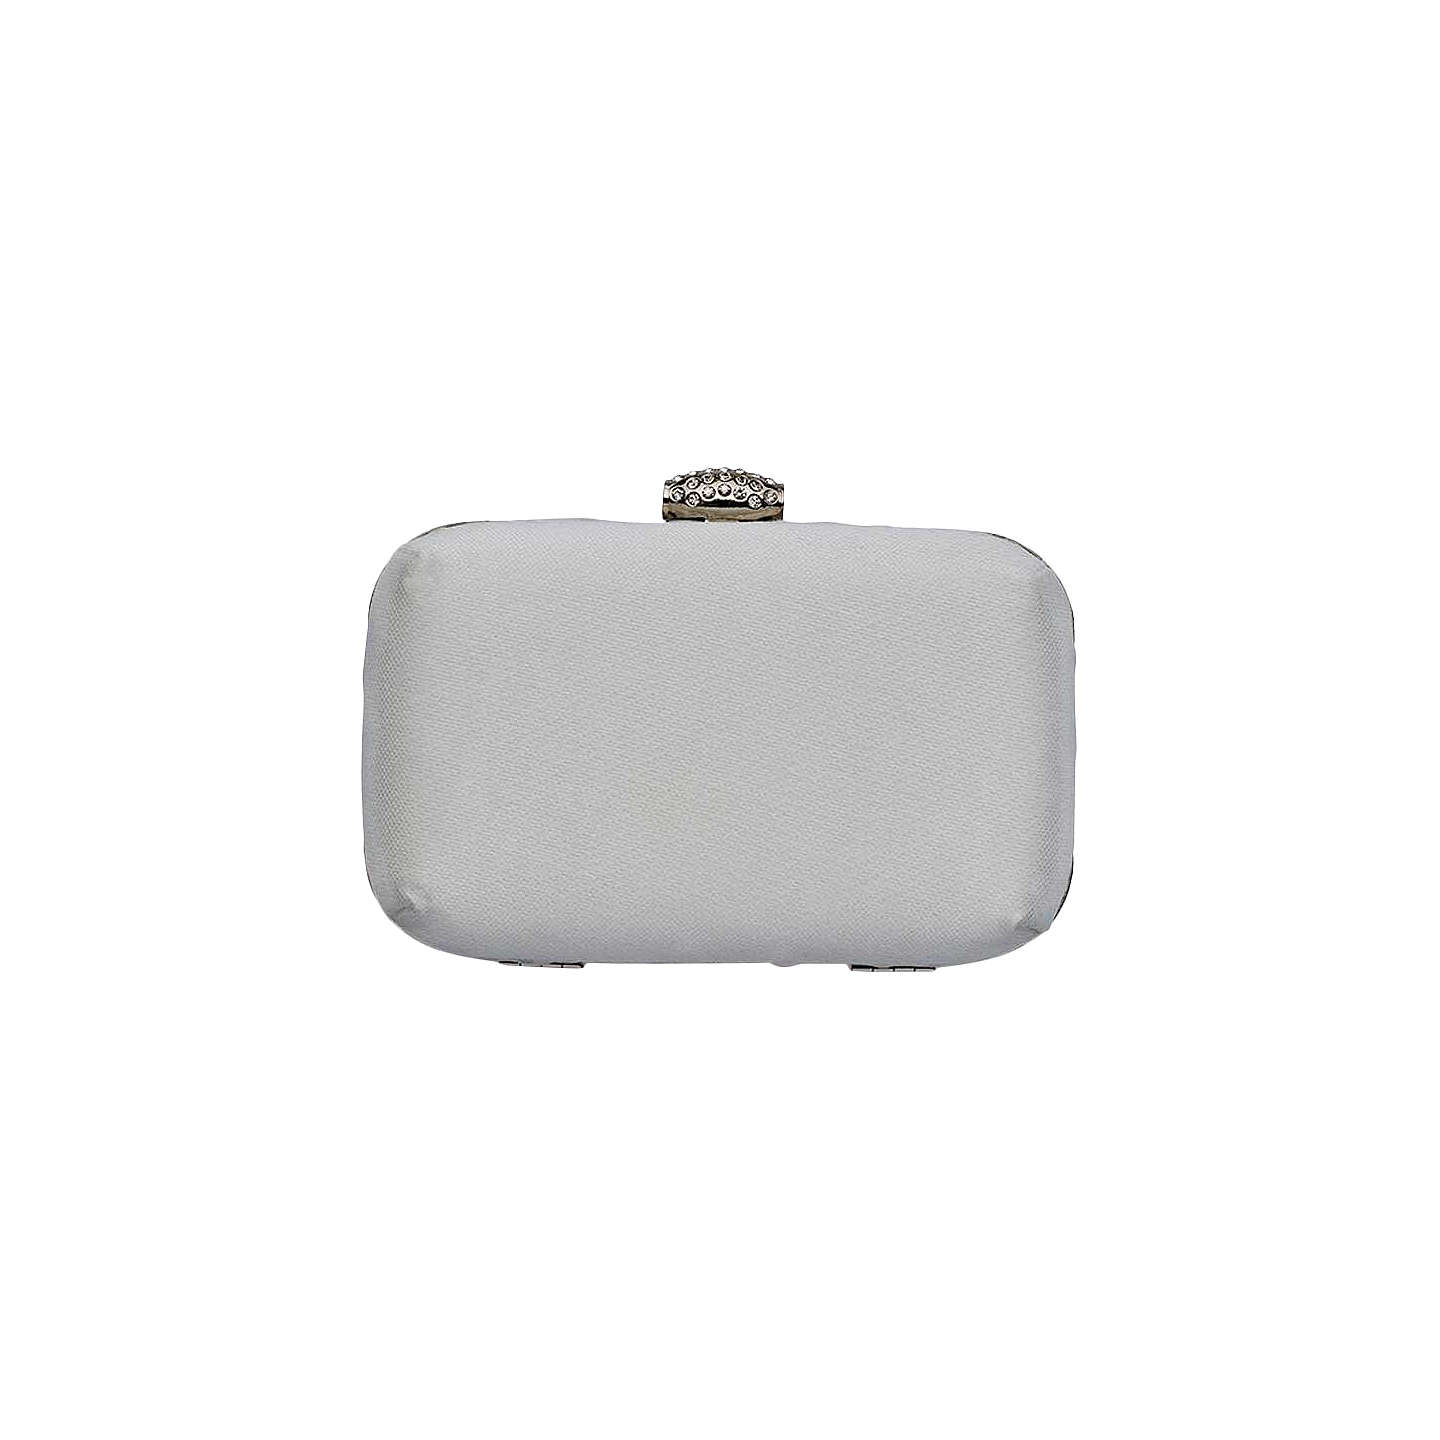 BuyRainbow Club Imani Satin Box Clutch Bag, Ivory Online at johnlewis.com